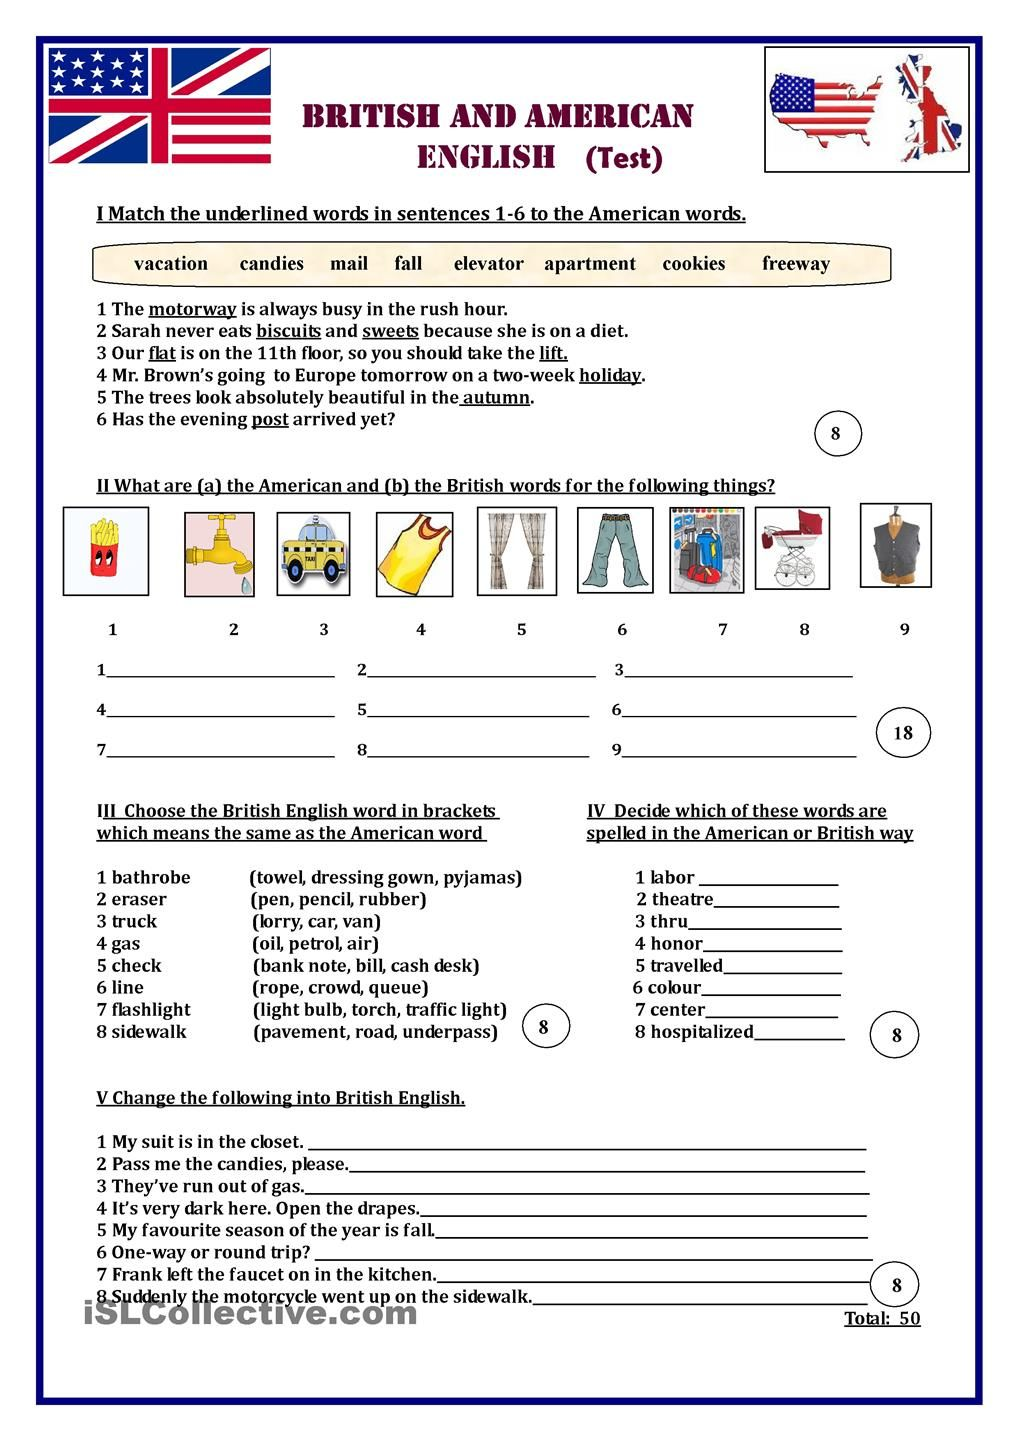 British and American English Test | Ireland lesson | Pinterest ...